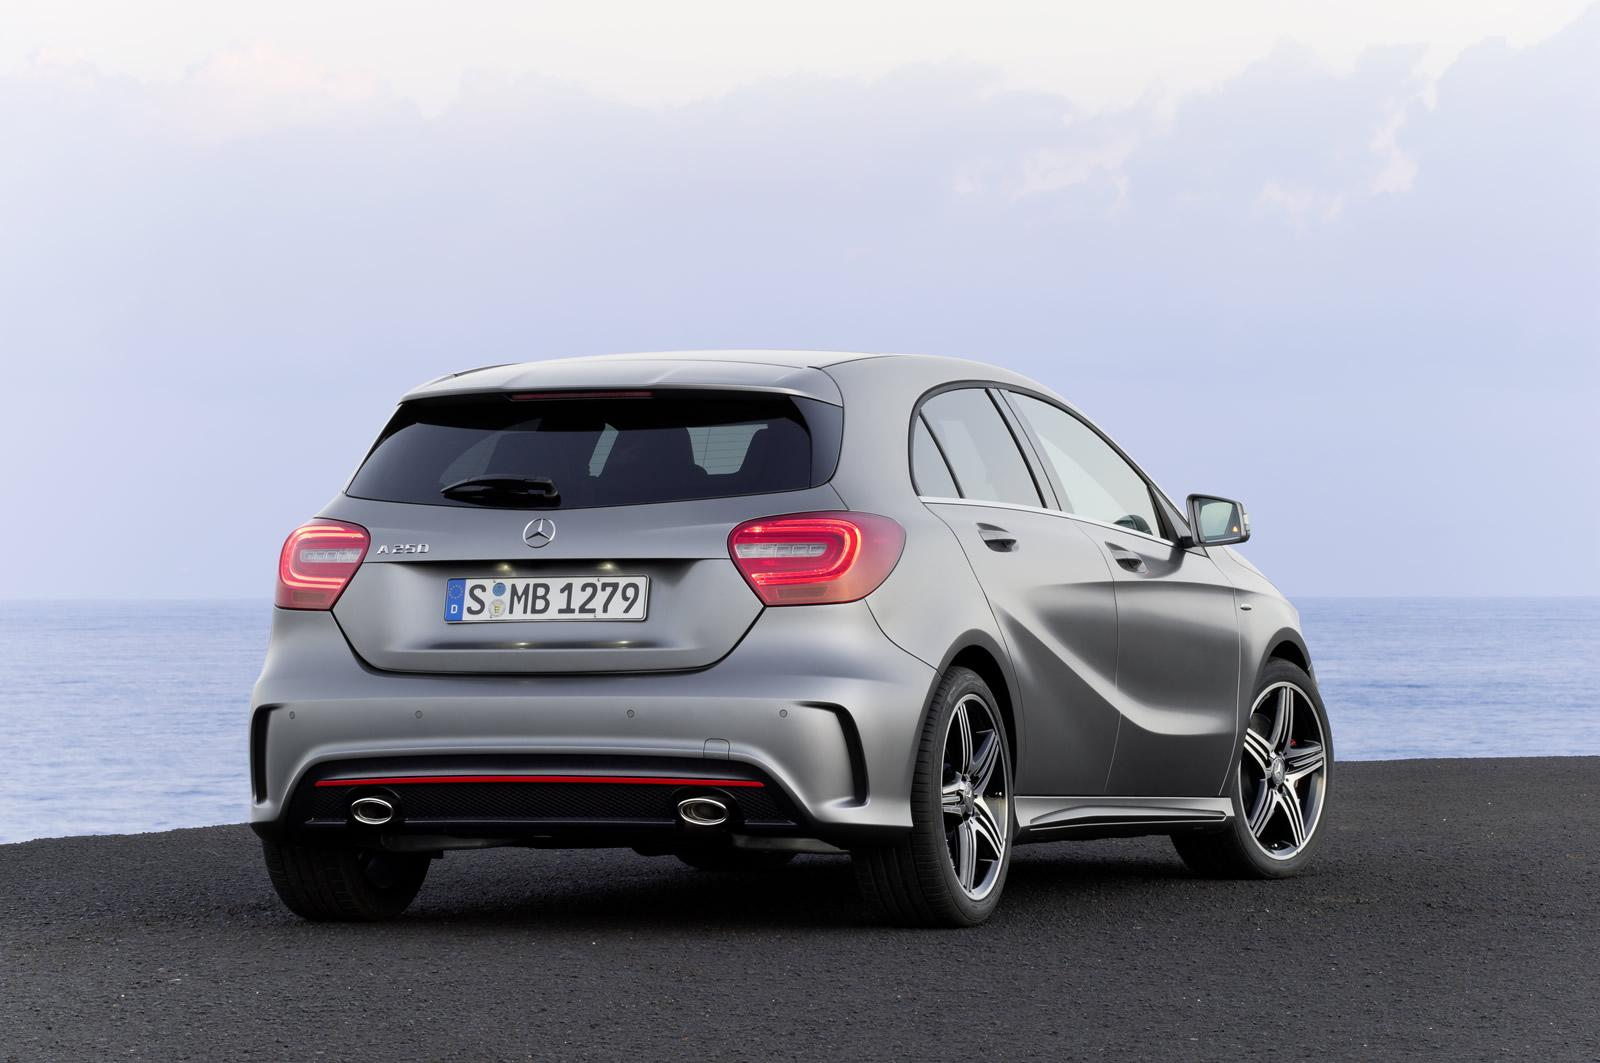 mercedes-a-class-1600x1063-4-awesome-car-image